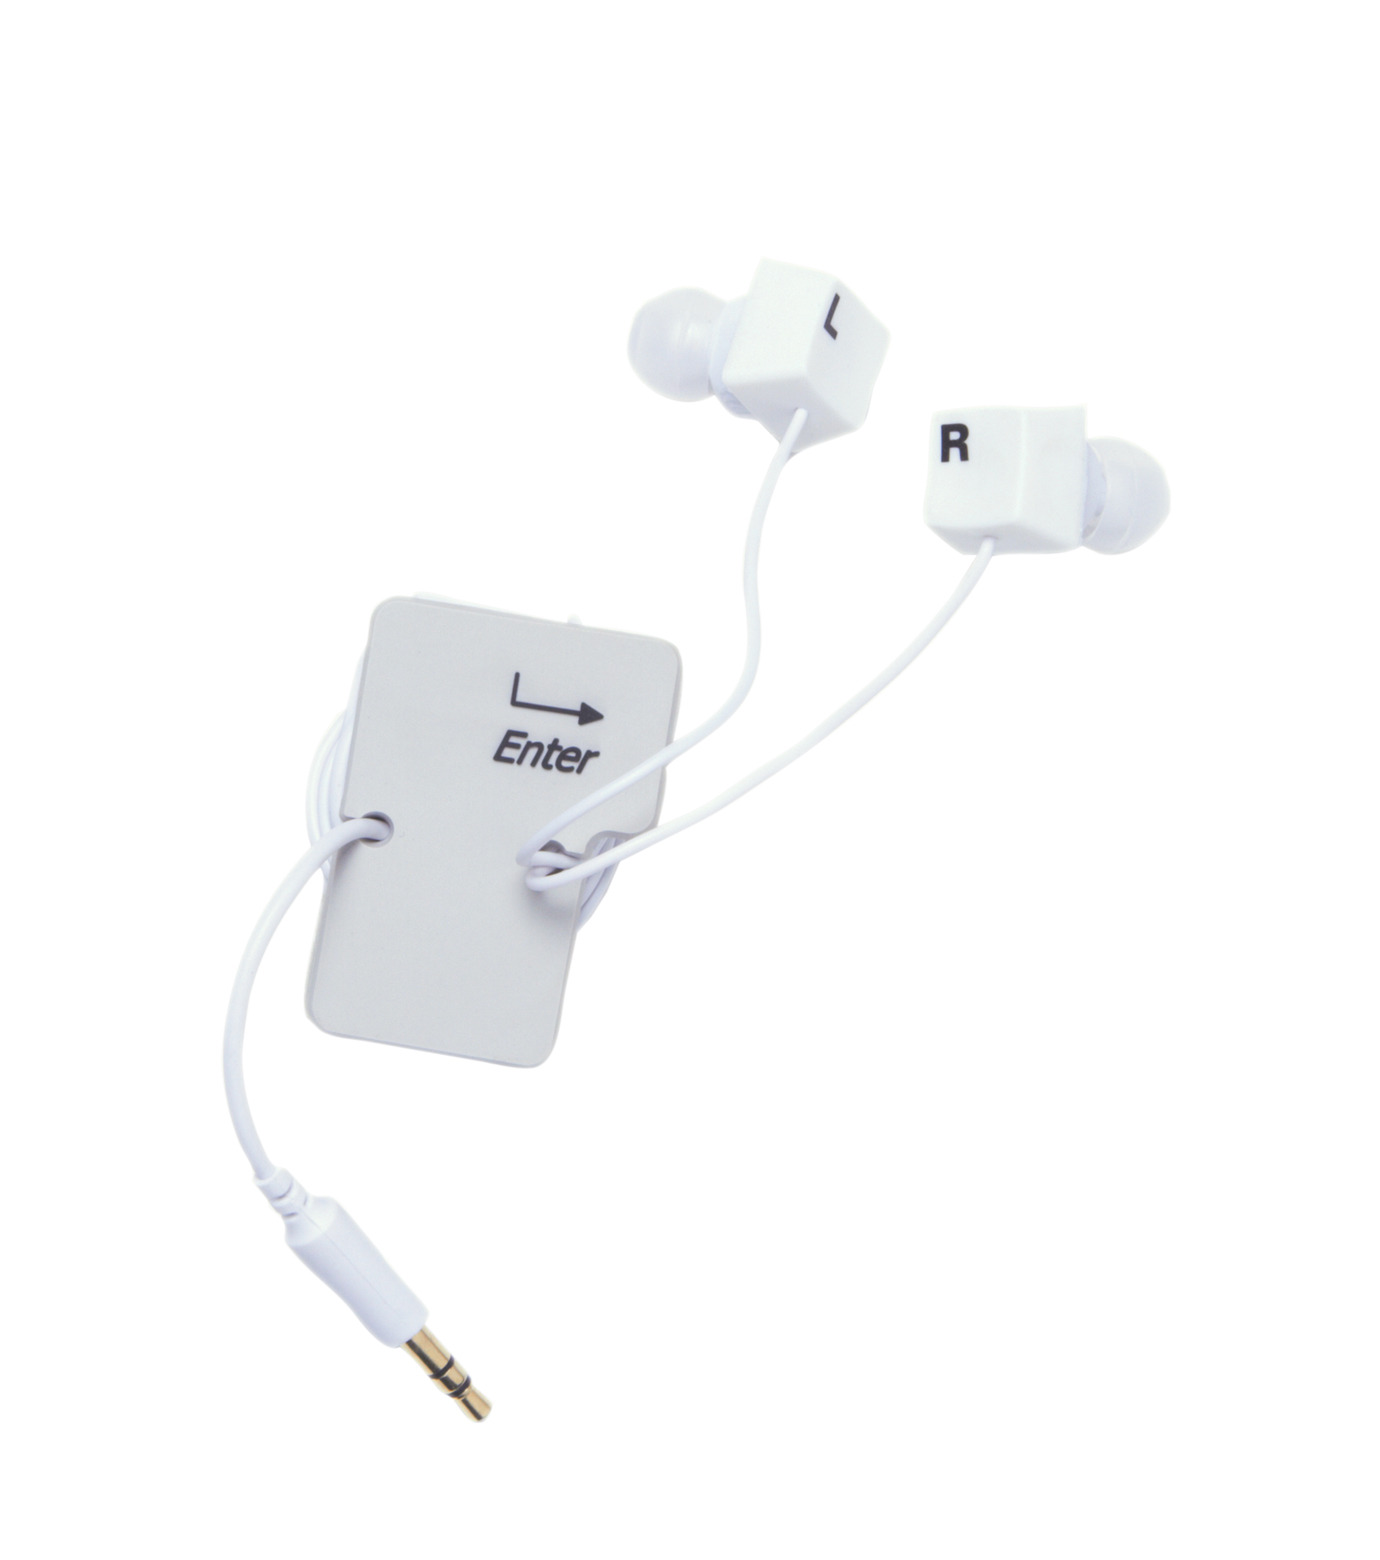 DCI(ディーシーアイ)のEarbud & cord wrp set: keybrd-WHITE(EARPHONE/EARPHONE)-30277-4 拡大詳細画像1